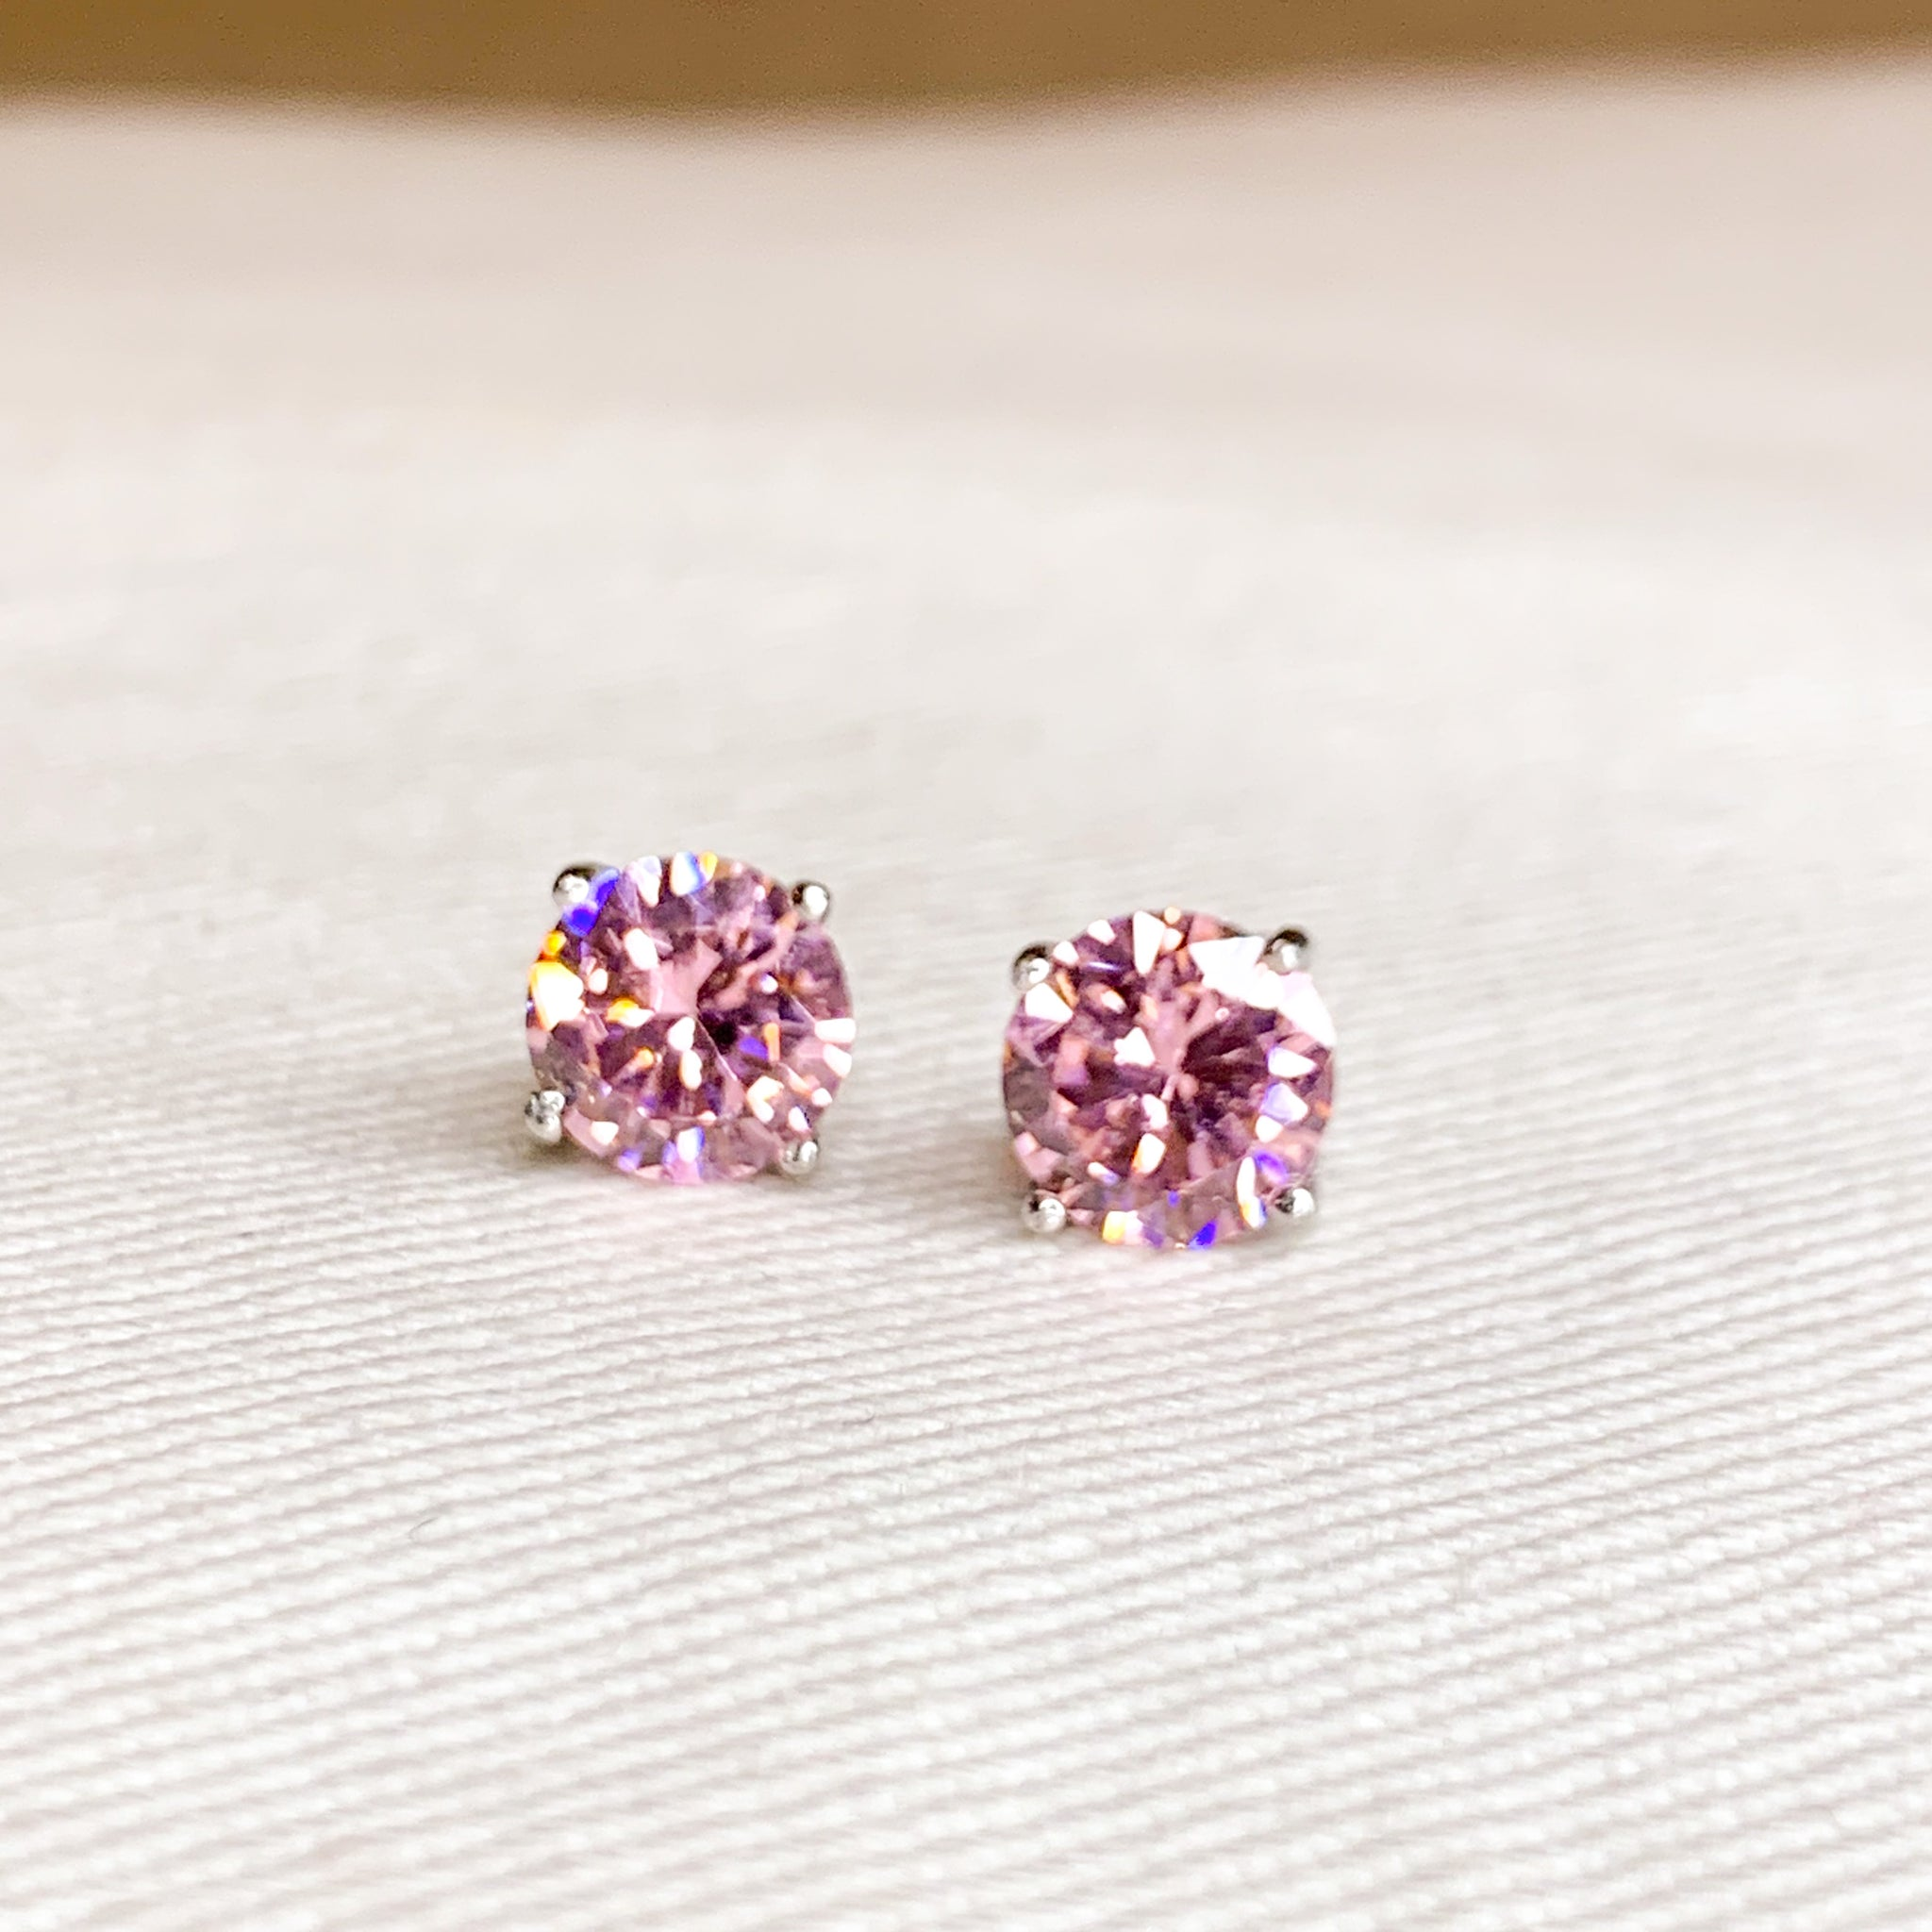 CZ Pink Solitaire Studs, Approximately 8mm